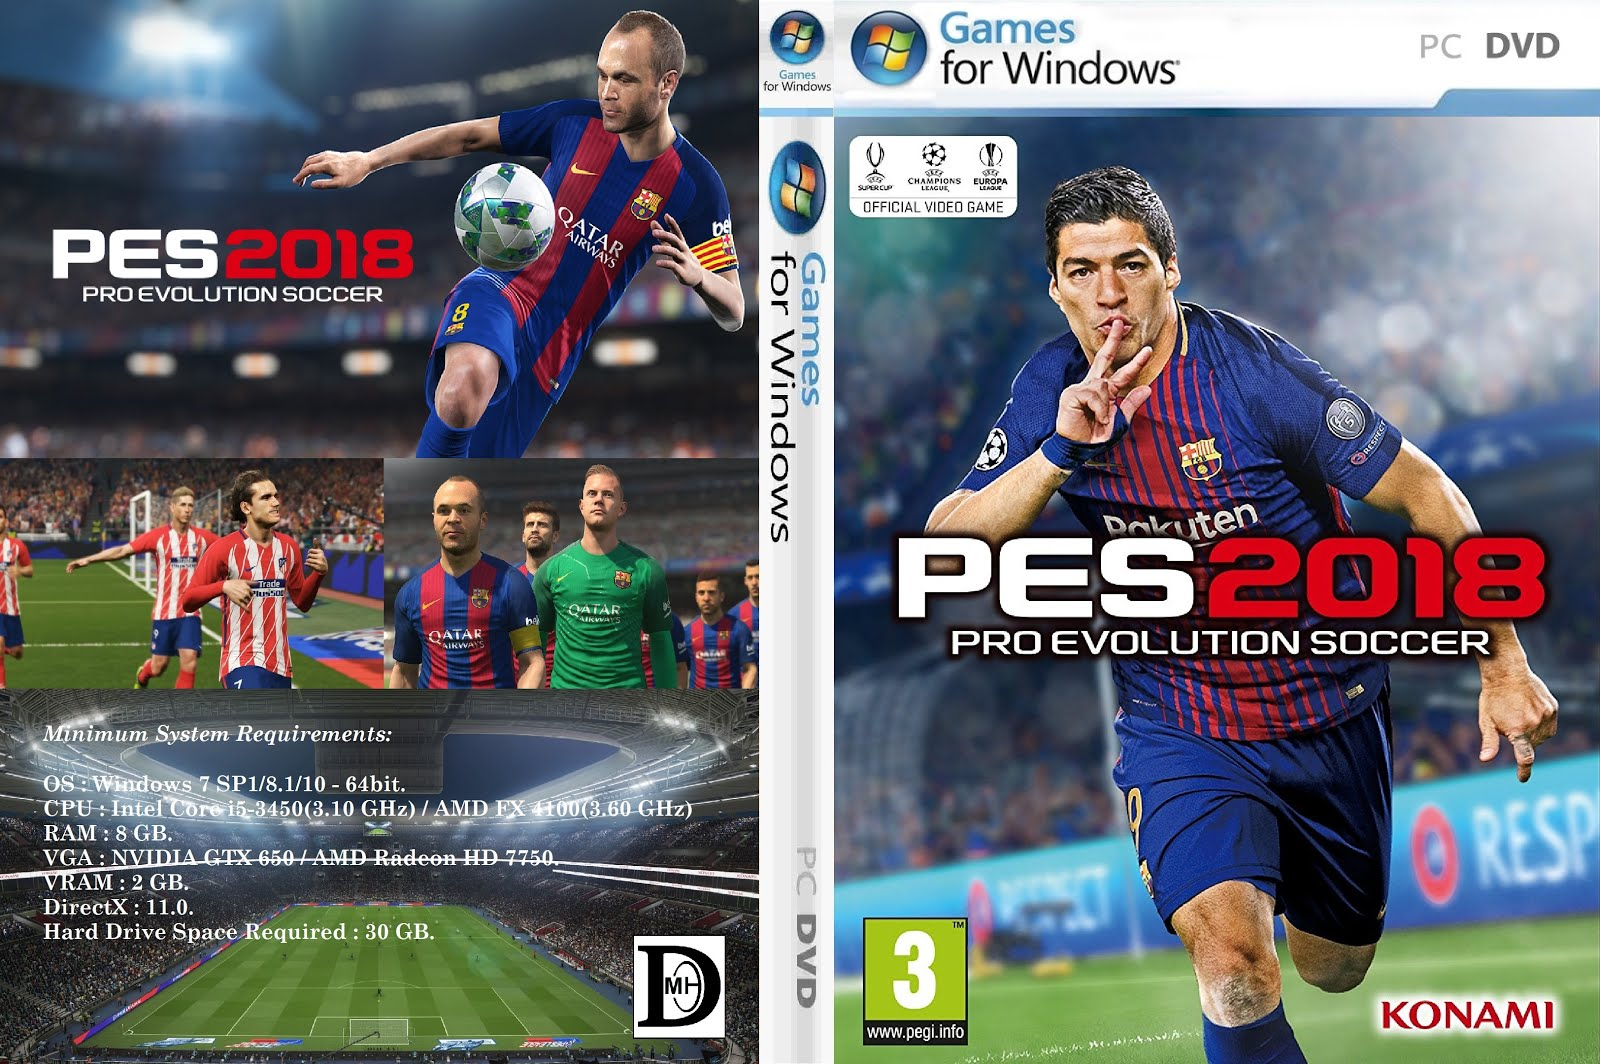 Download game pes 2018 full version pc | Download PES 2018 Free Full